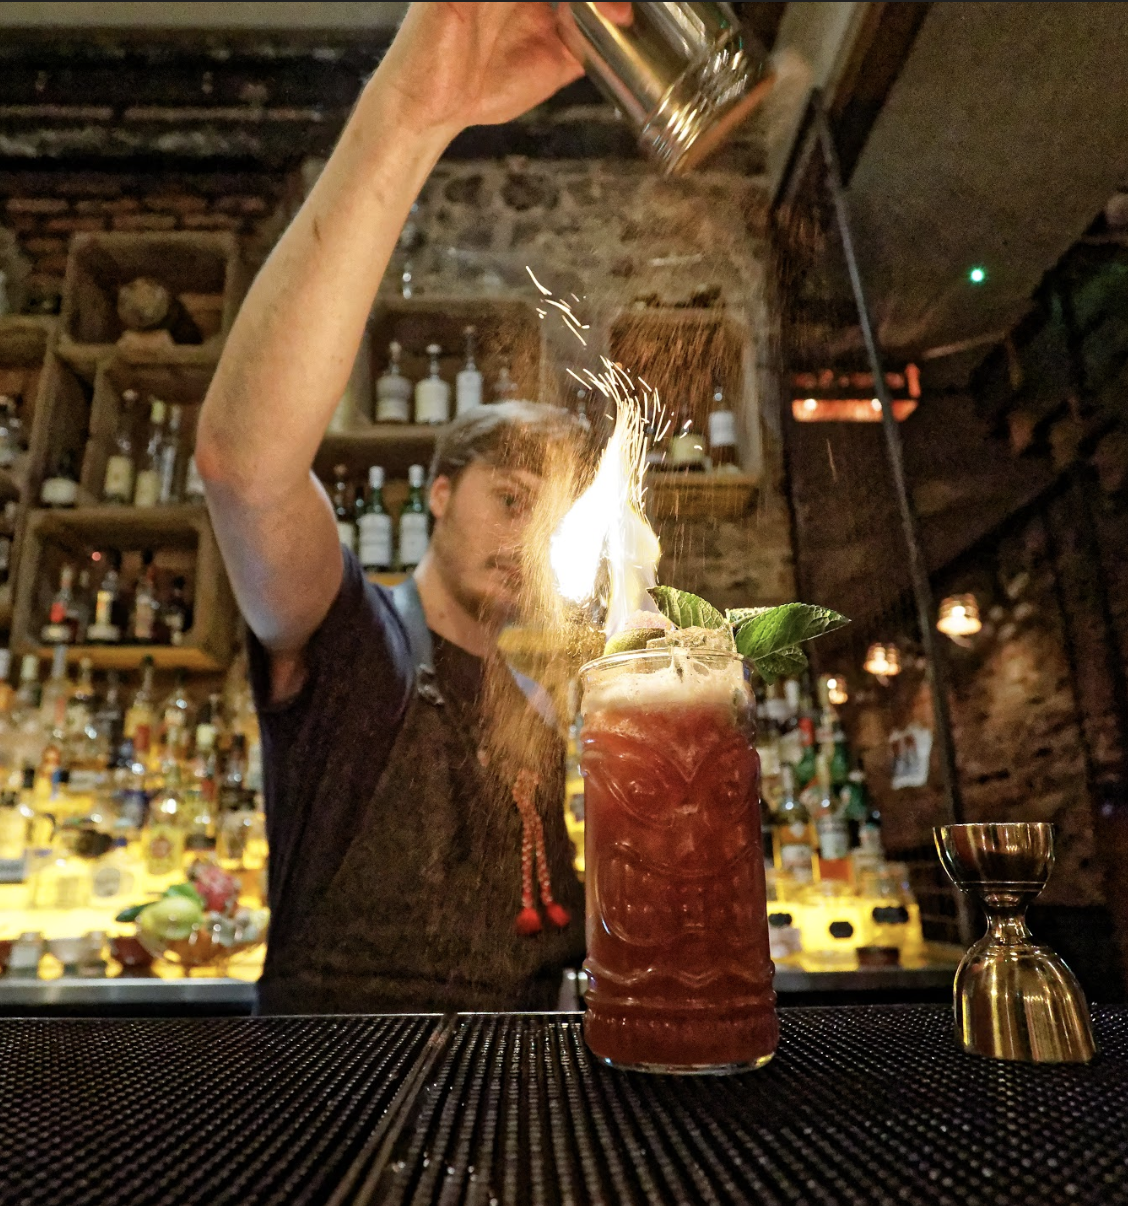 A picture of our bartender making cocktails with fire and rum